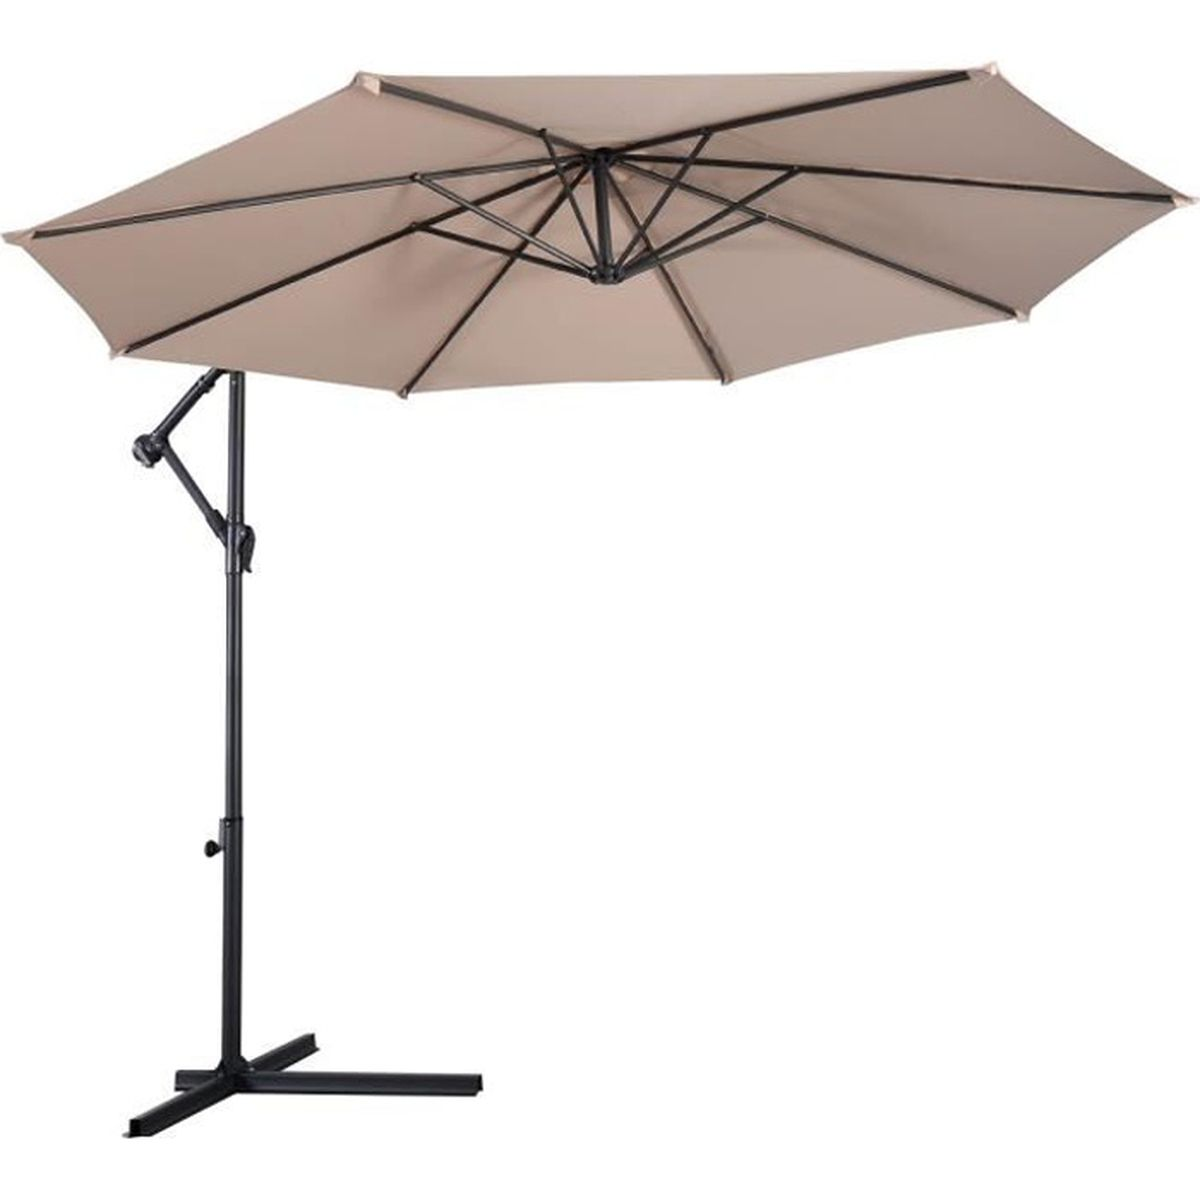 parasol excentr jardin 3m protection pare soleil manivelle achat vente parasol parasol. Black Bedroom Furniture Sets. Home Design Ideas